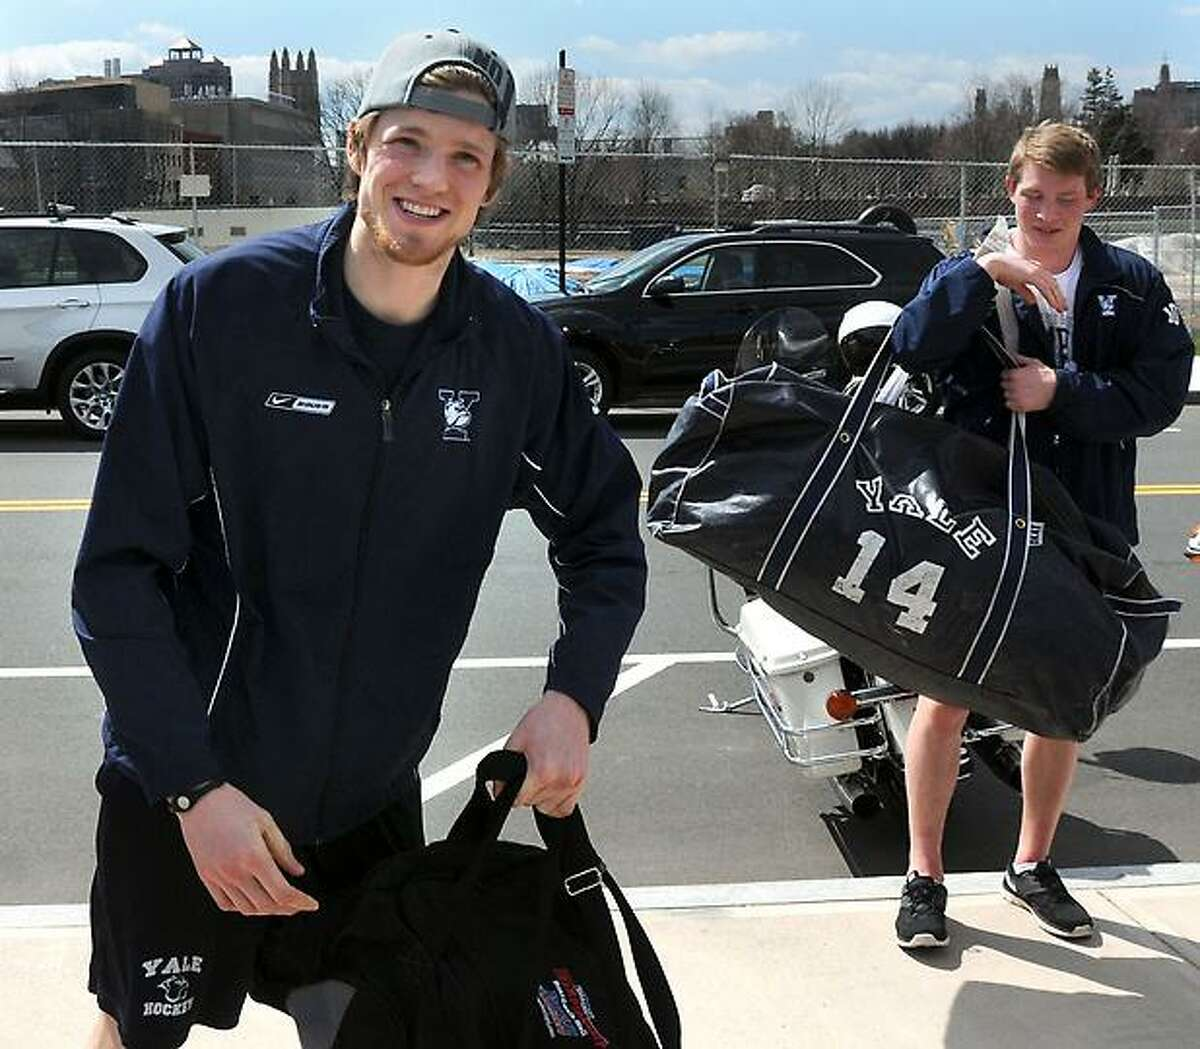 The NCAA men's national hockey champions, Yale University, including outstanding goaltender Jeff Malcolm, left, and Ryan Obuchowski, returns home from the Frozen Four in Pittsburgh, where they beat crosstown rivals Quinnipiac Univeristy, 4-0. Mara Lavitt/New Haven Register mlavitt@newhavenregister.com4/14/13